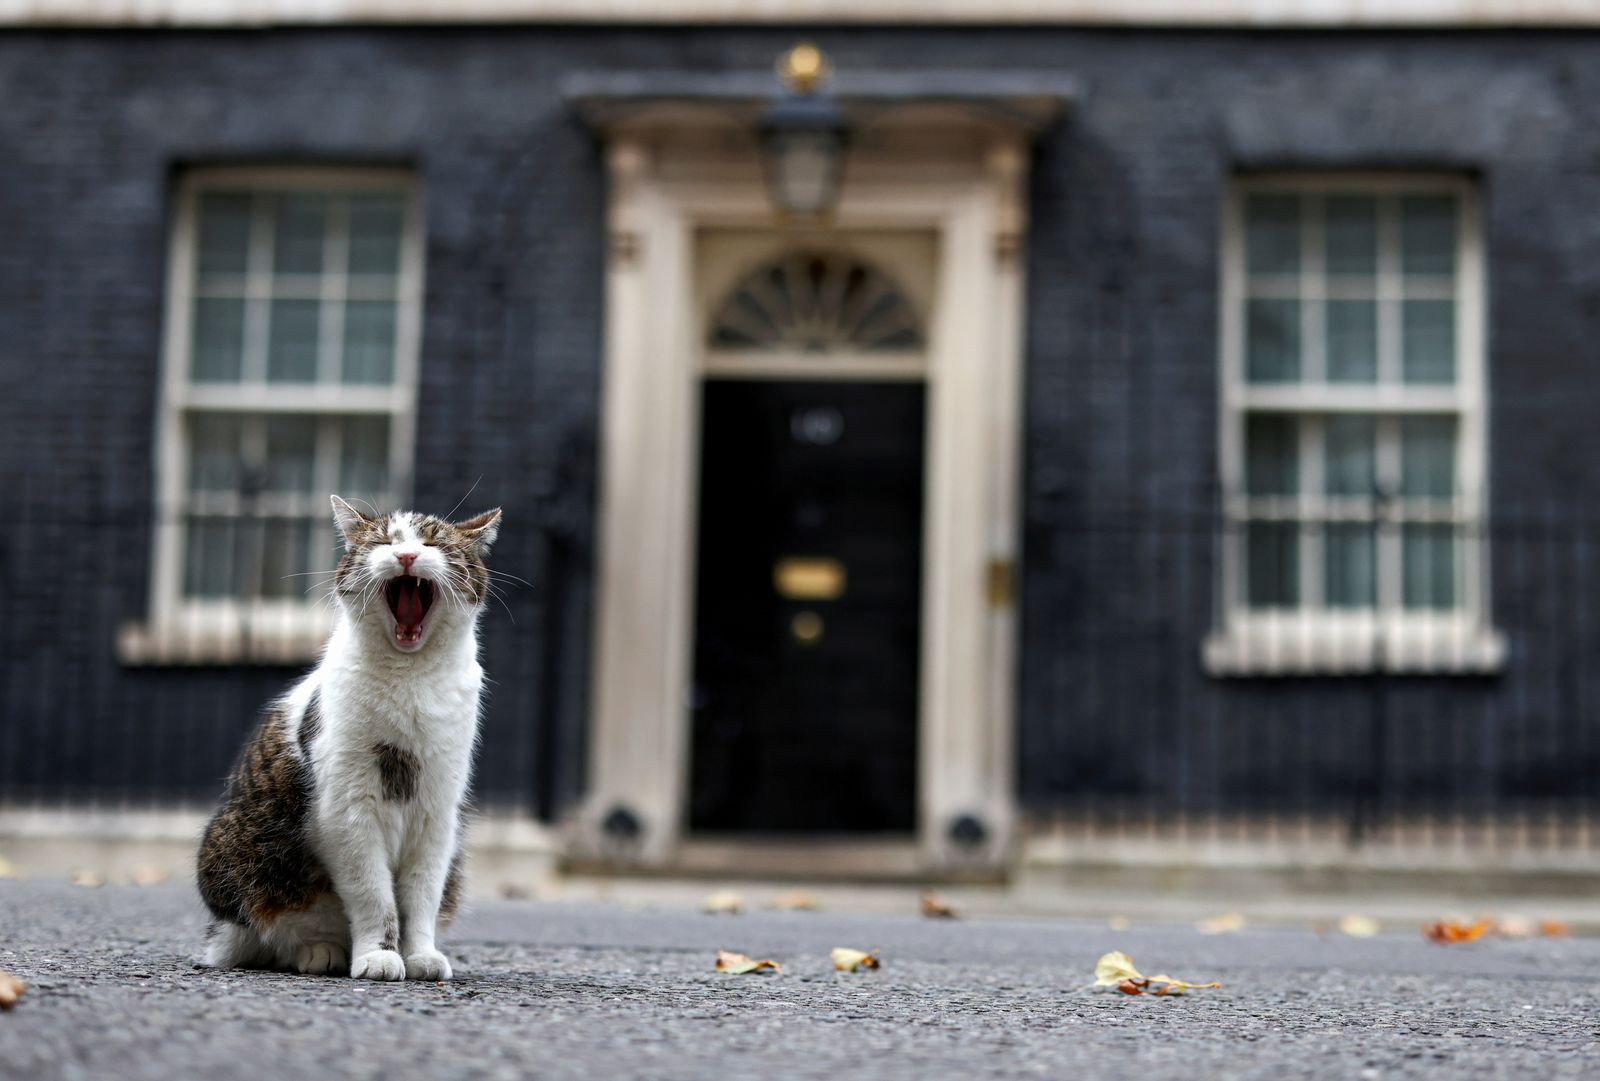 Larry the cat yawns outside Downing Street in London